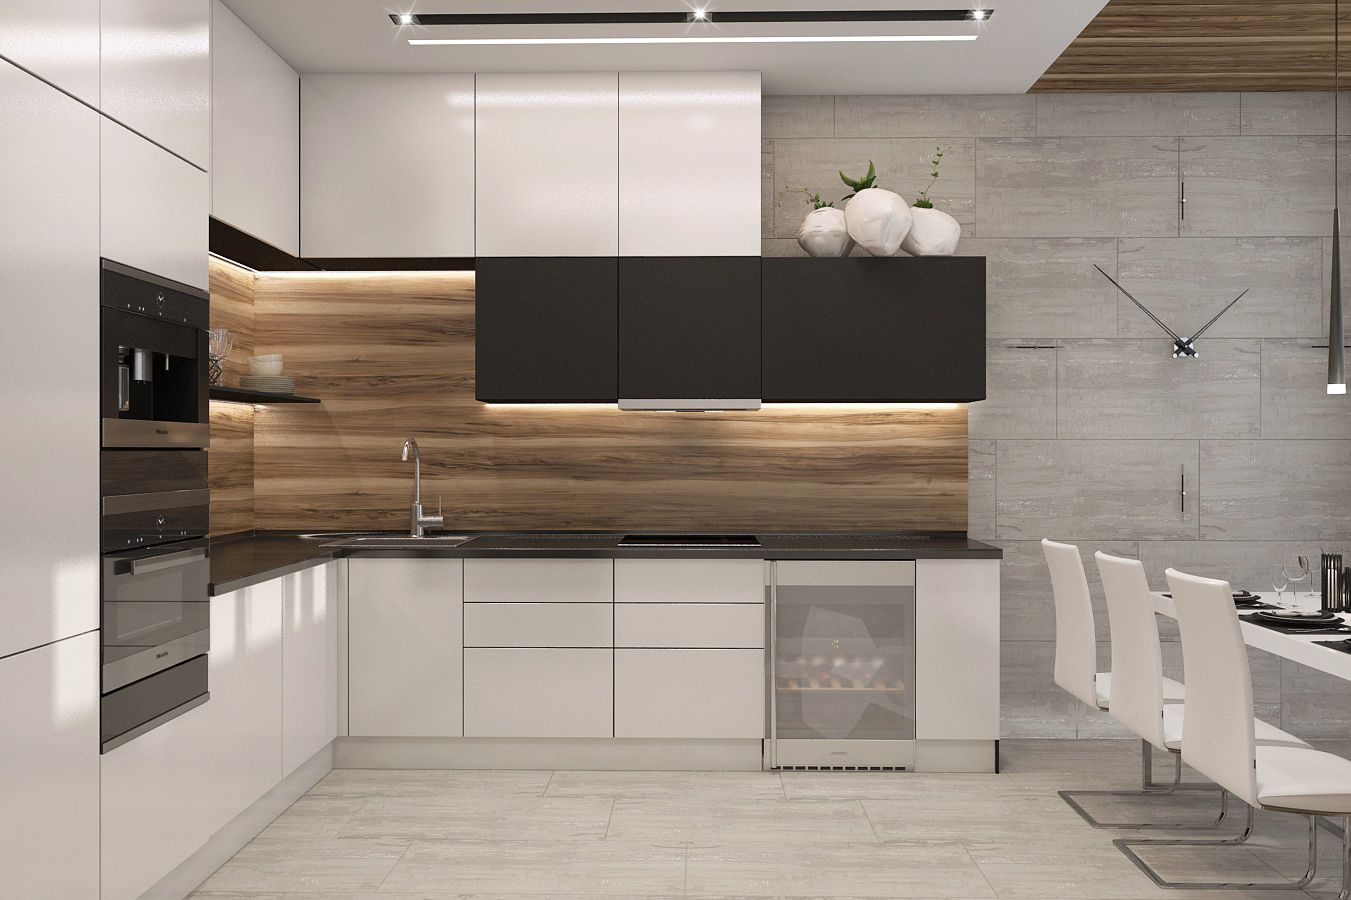 60 Awesome Kitchen Cabinetry Ideas and Design | Kitchen cabinetry ...